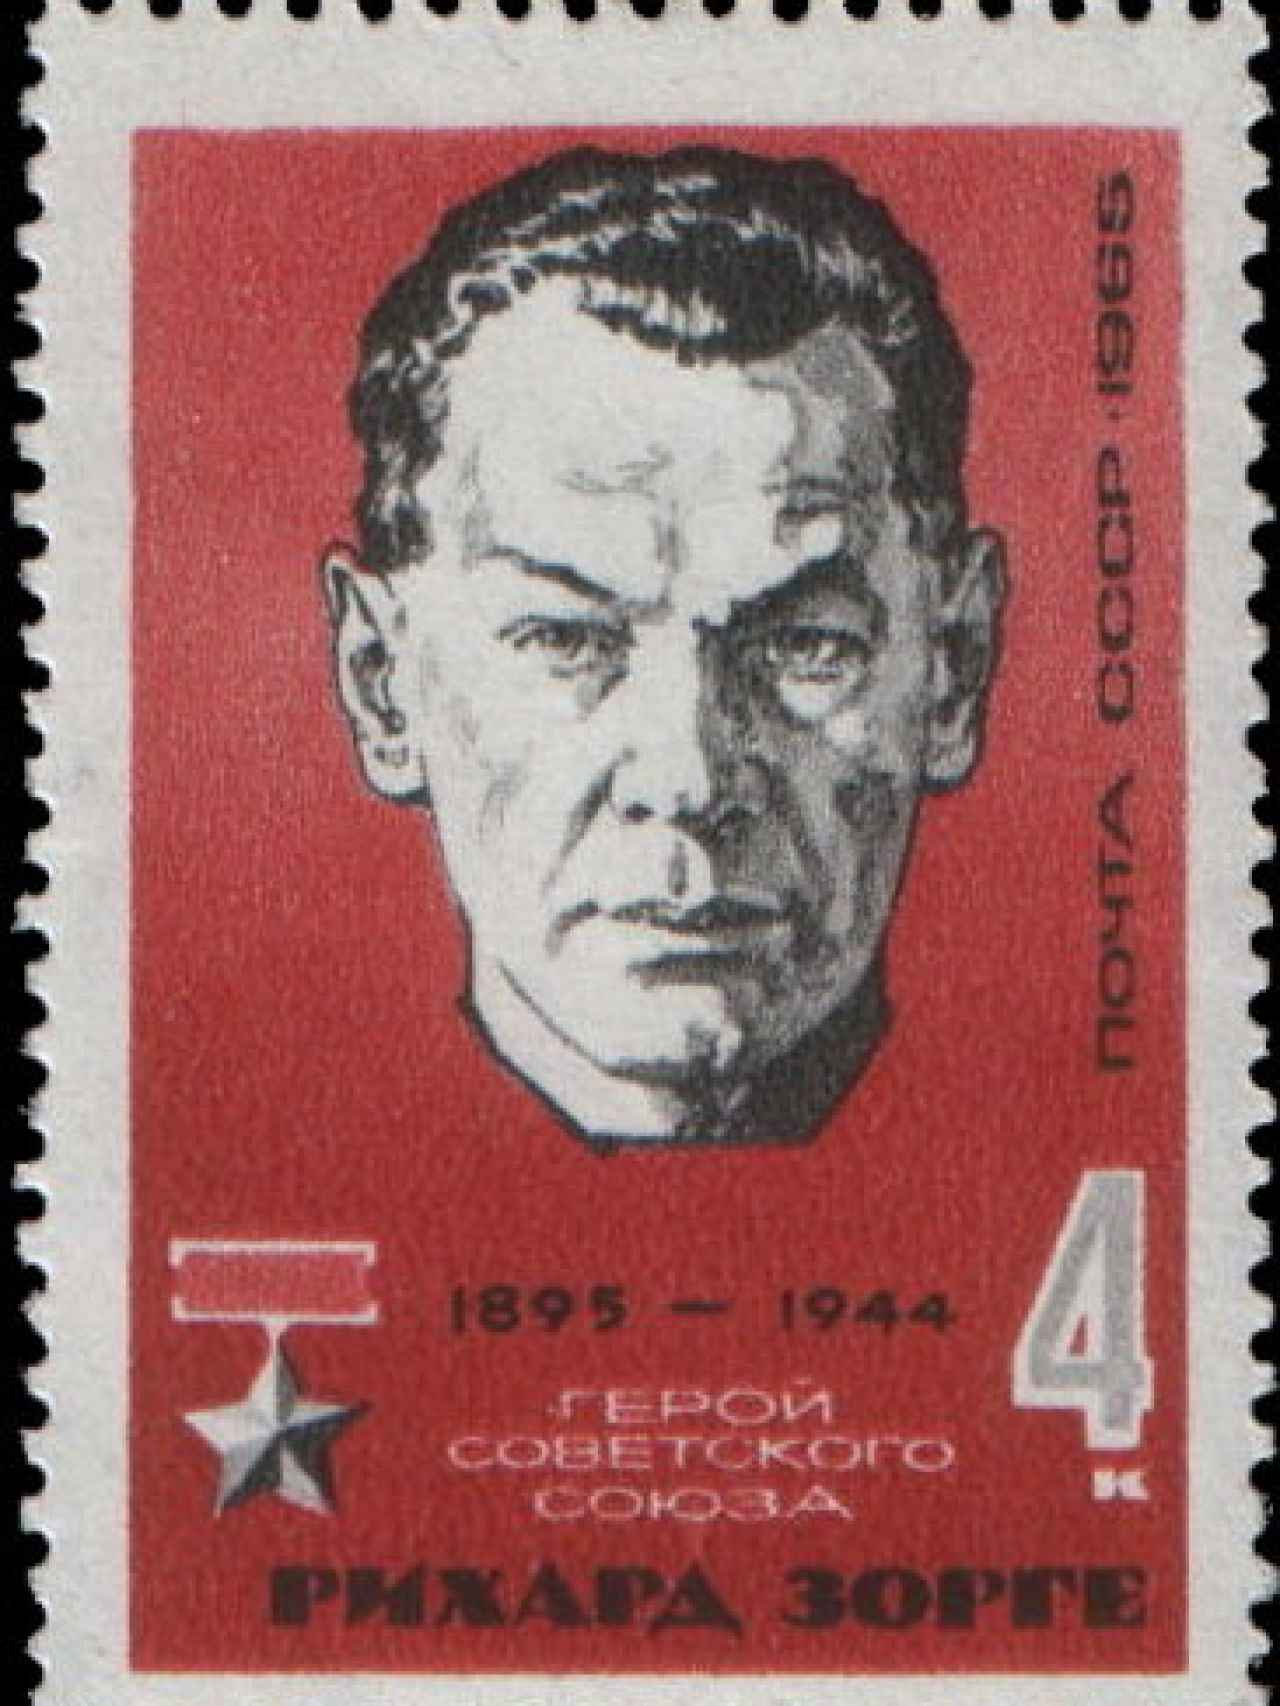 Sello de la URSS que homenajea a Richard Sorge.